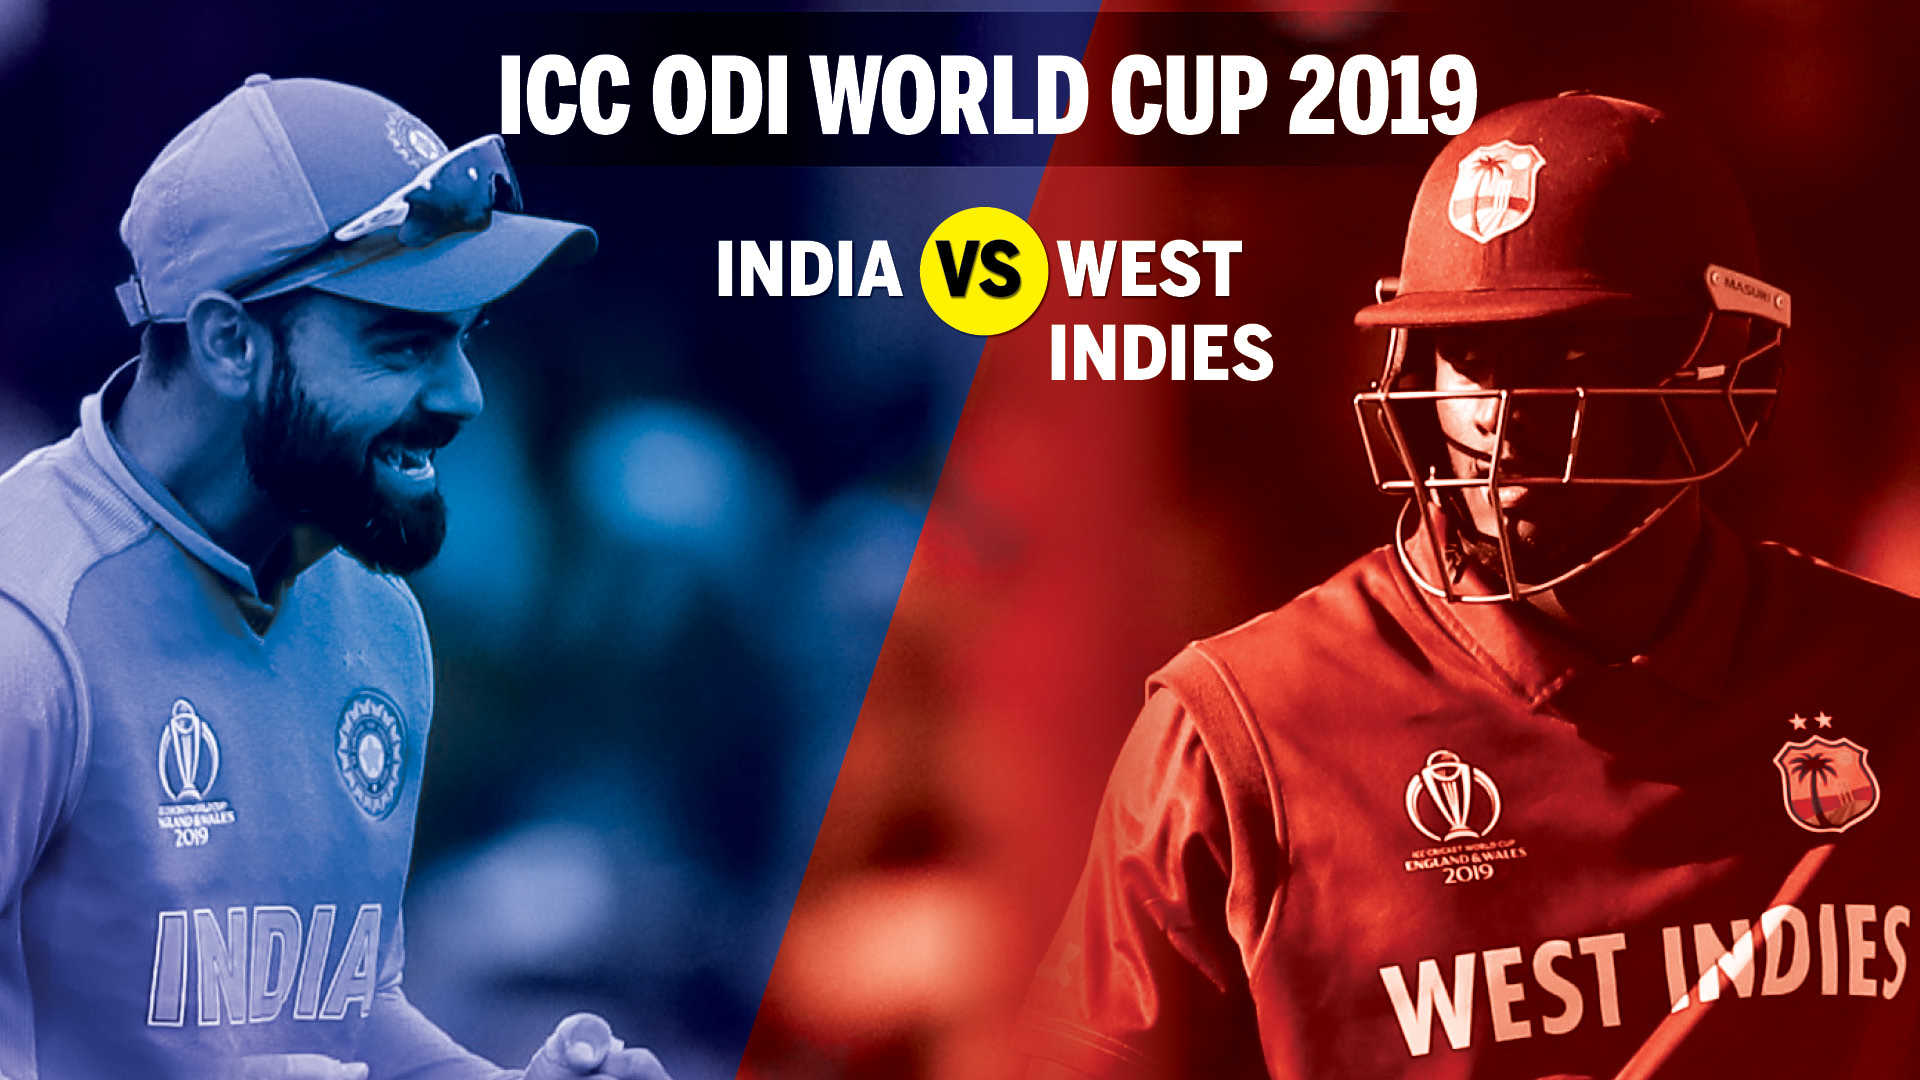 India vs West Indies Cricket World Cup 2019